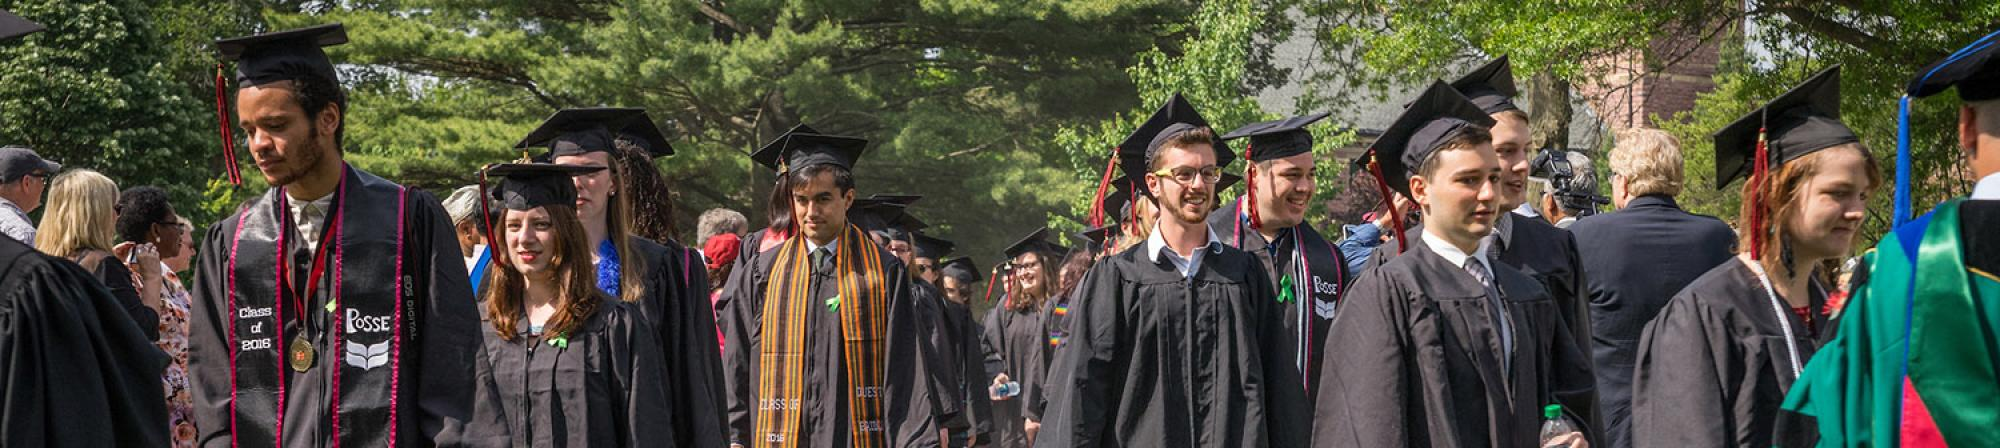 Graduates file in to the 2016 Grinnell College commencement ceremony